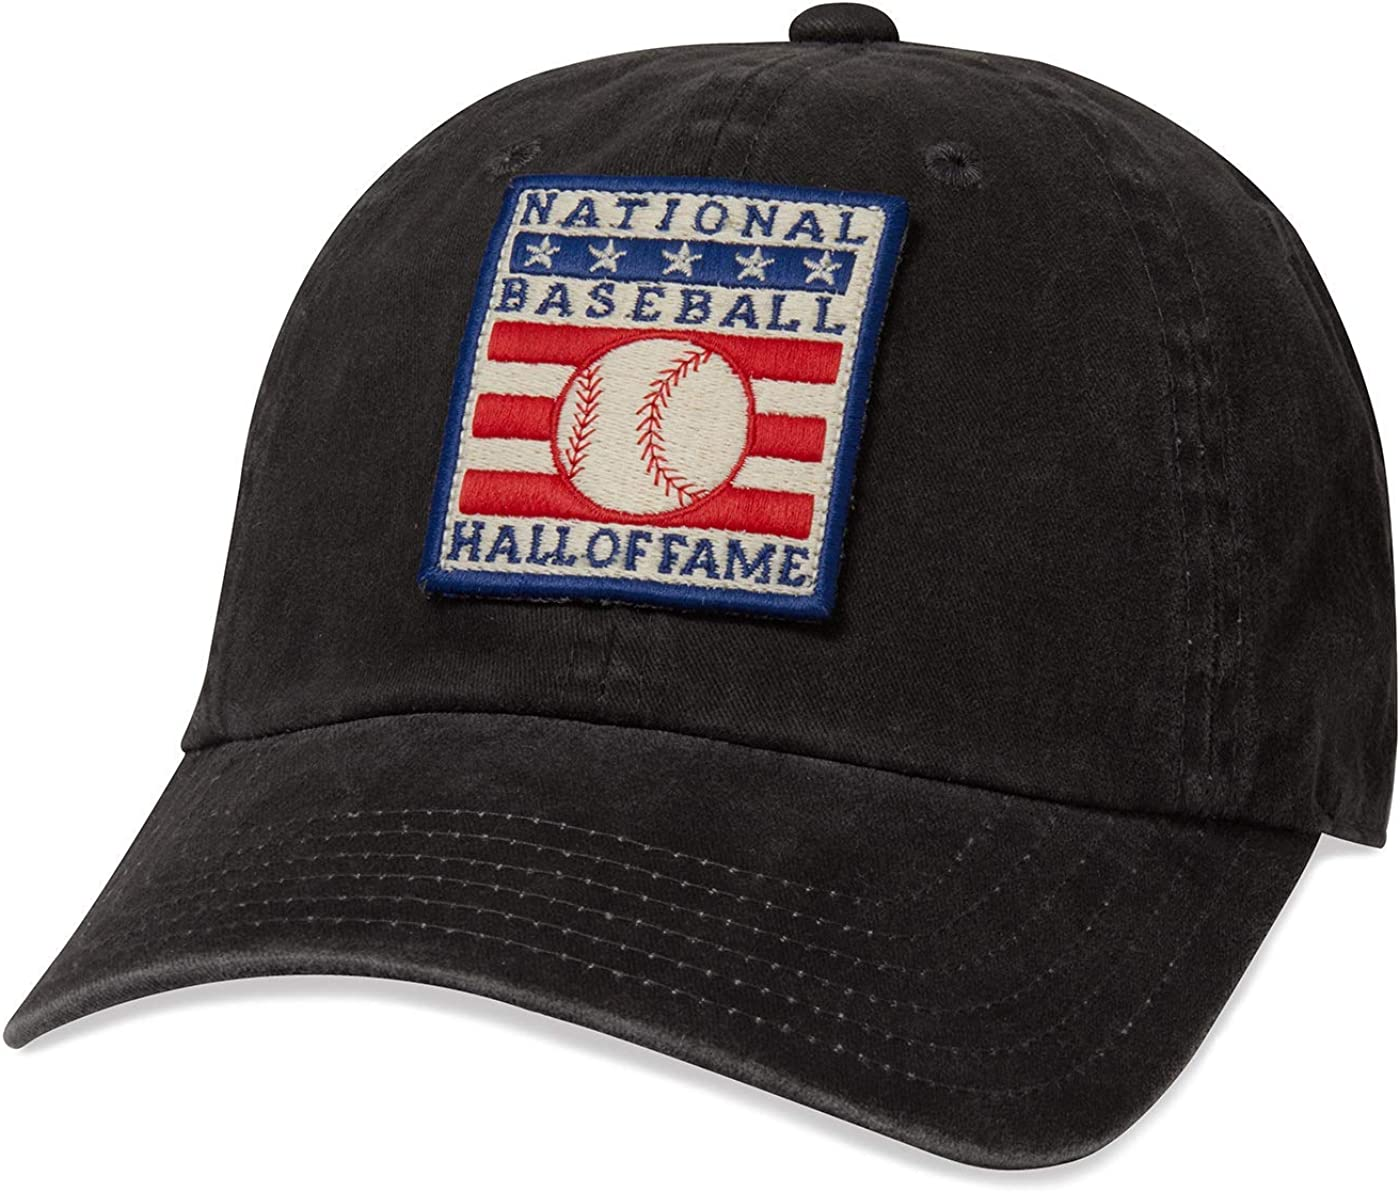 Black 44747A-NBHOF AMERICAN NEEDLE National Baseball Hall of Fame Hat Buckle Strap